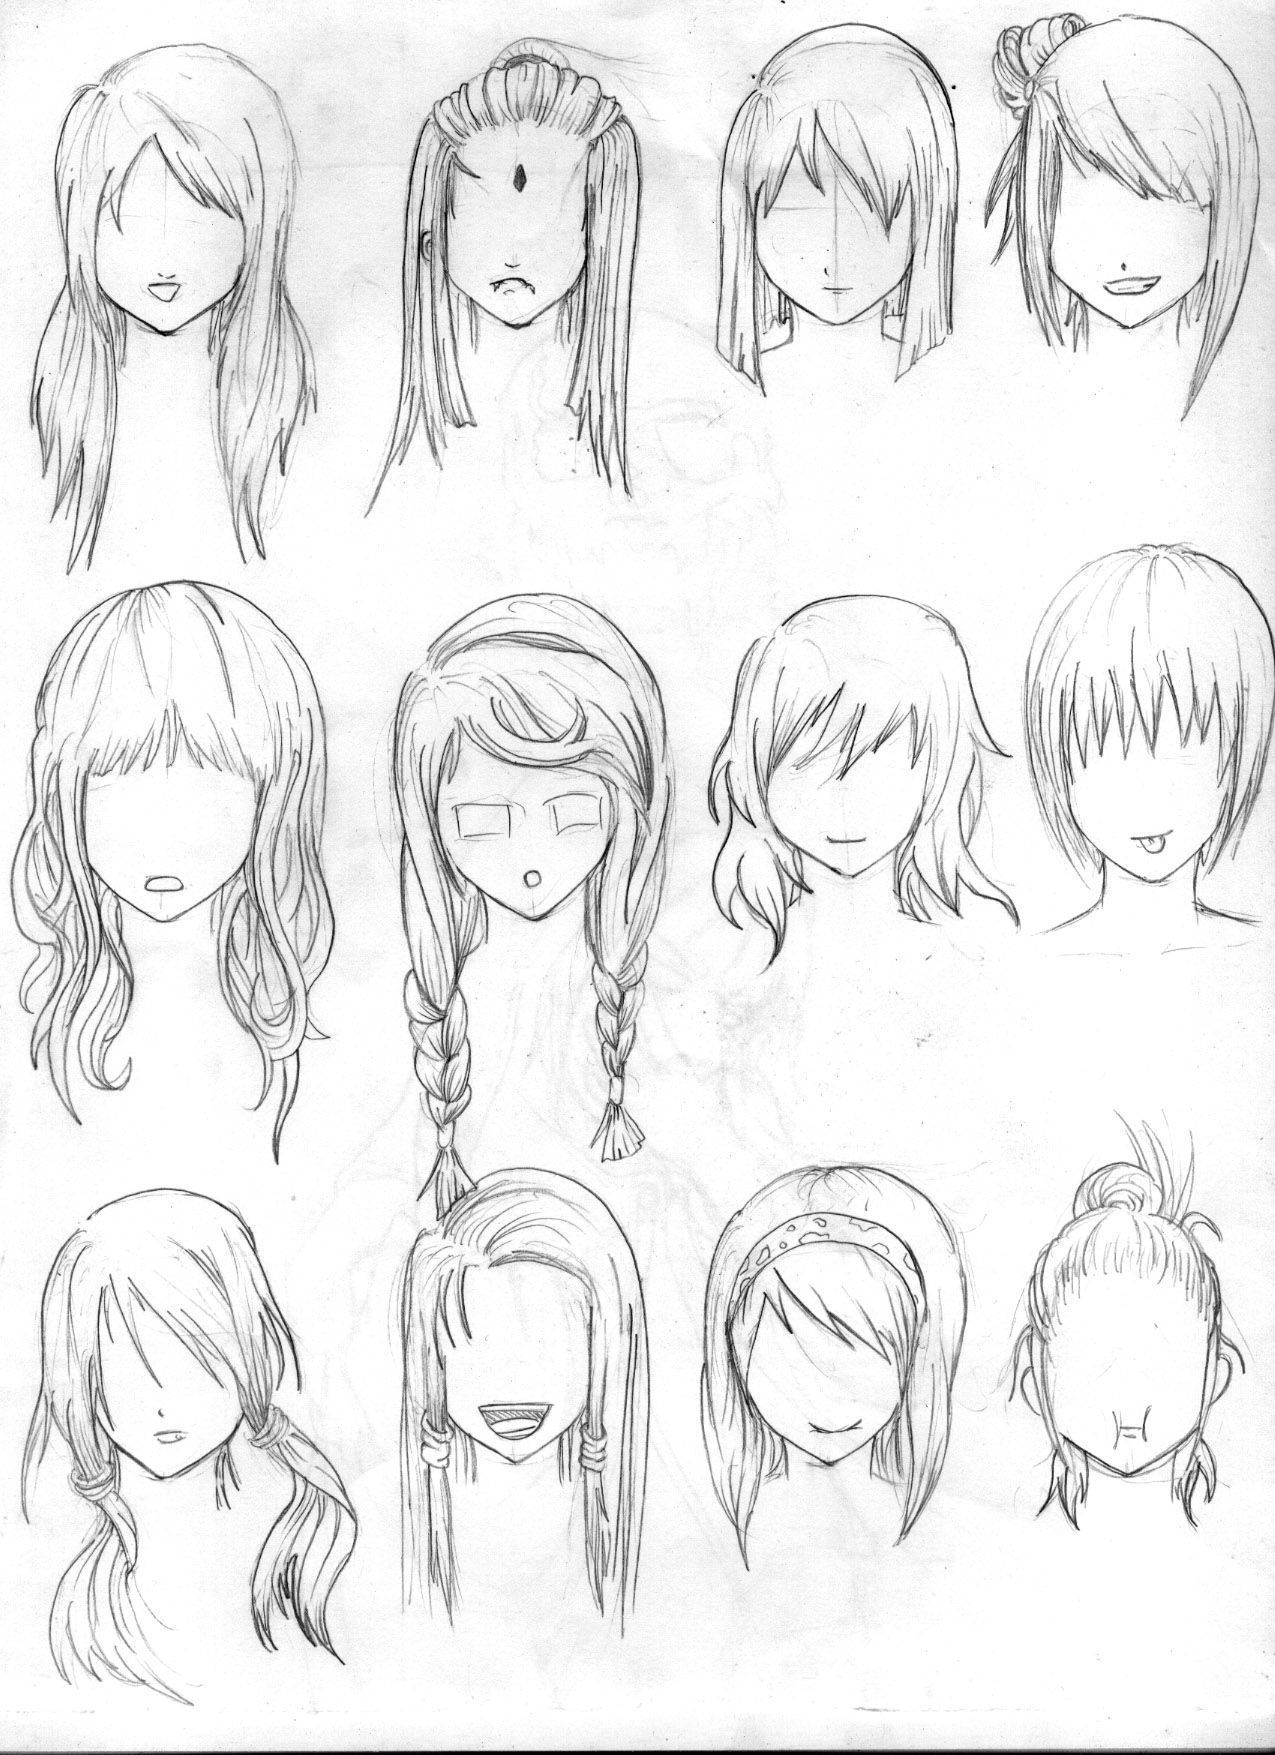 28 Albums Of Easy Drawings Of Girls With Short Hair Explore Tomboyhairstyles 28 Albums Of Easy Dr Short Hair Drawing How To Draw Hair How To Draw Anime Hair